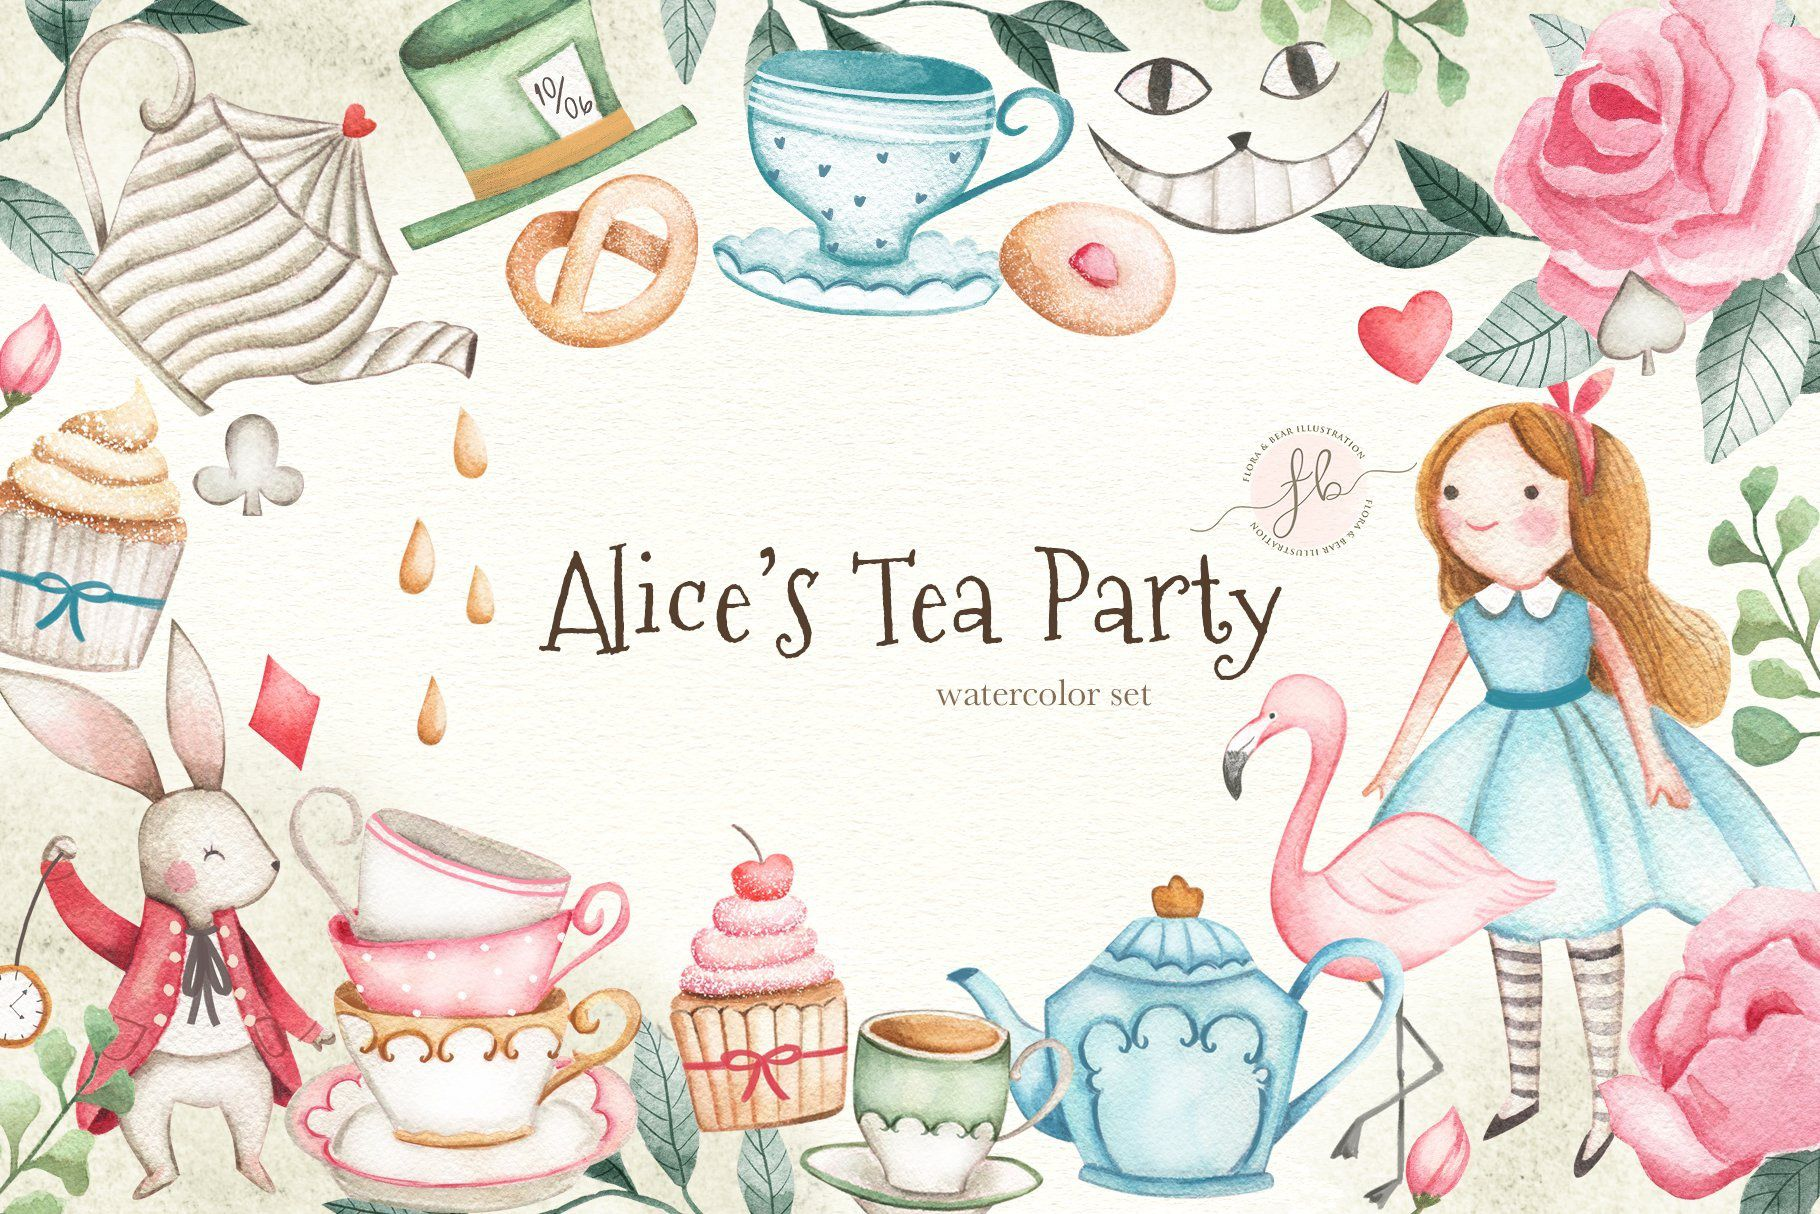 000 Unforgettable Alice In Wonderland Tea Party Template Highest Quality  Templates Invitation FreeFull